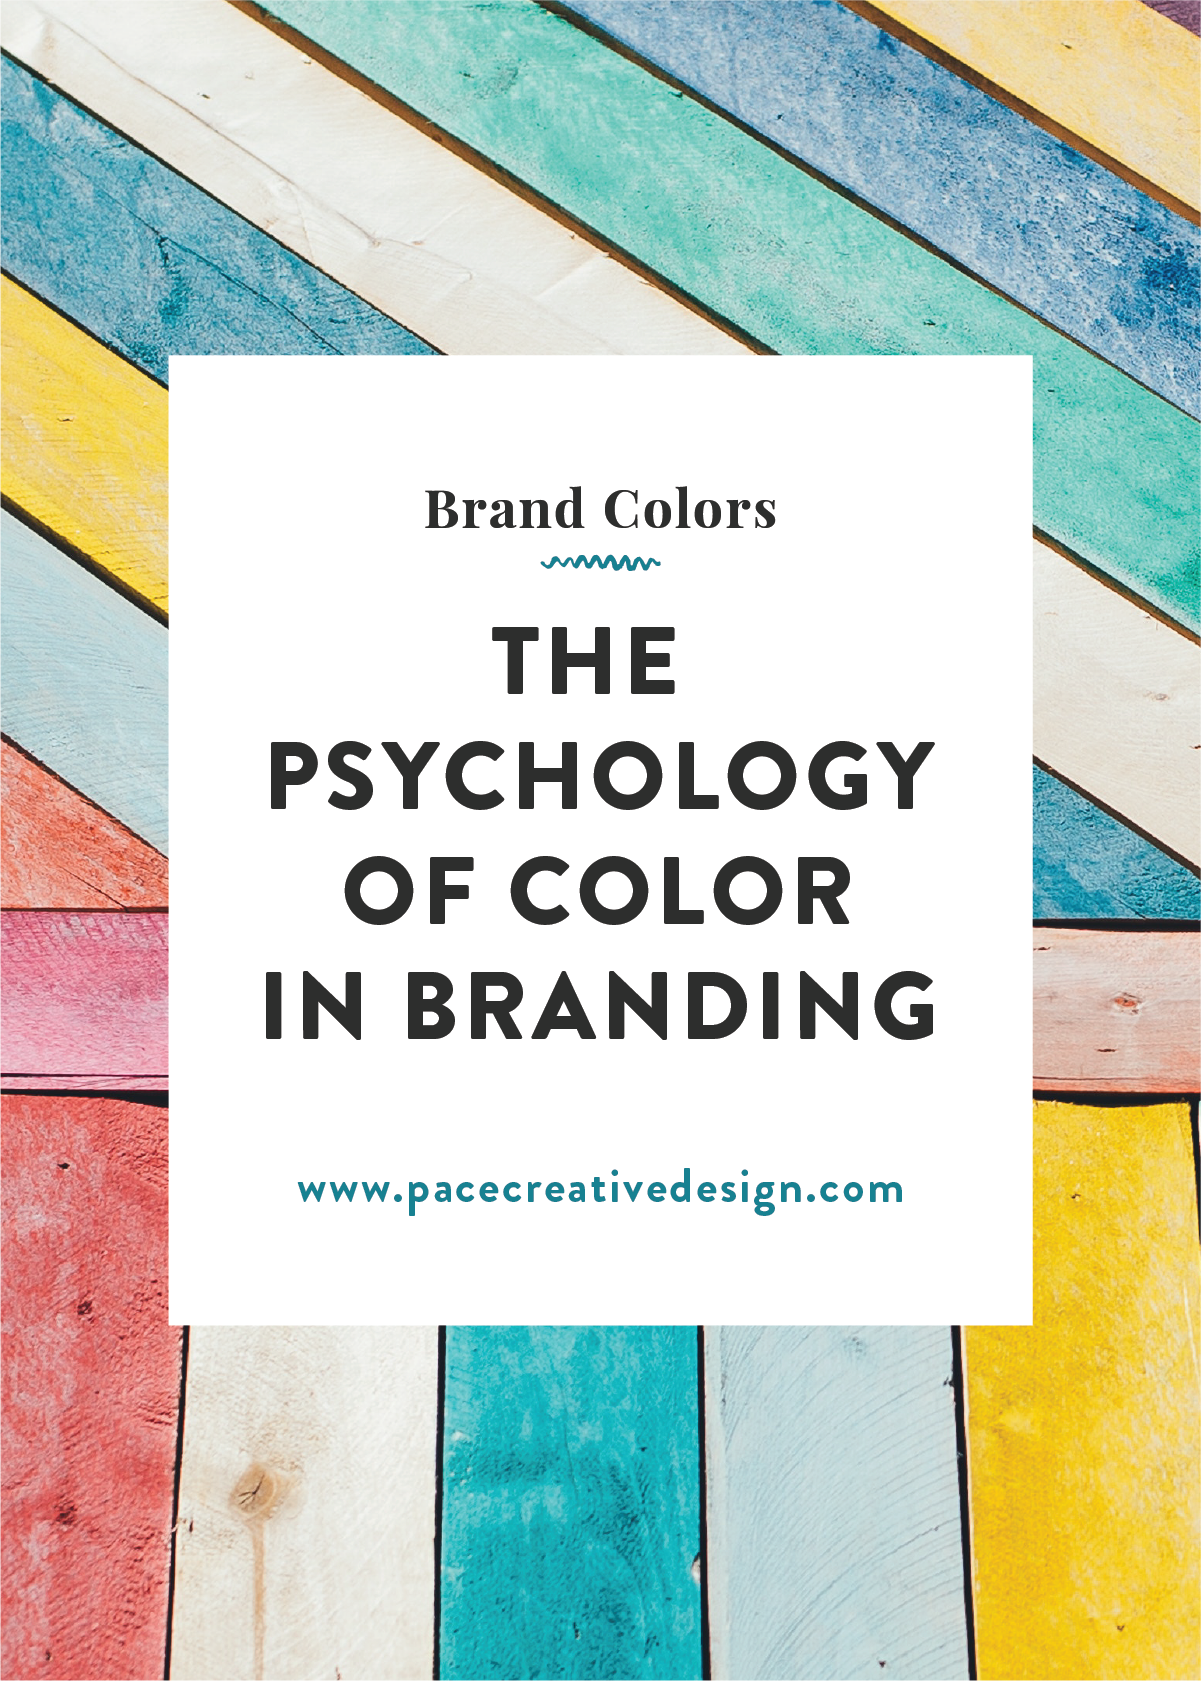 The Psychology of Color in Branding | Pace Creative Design Studio